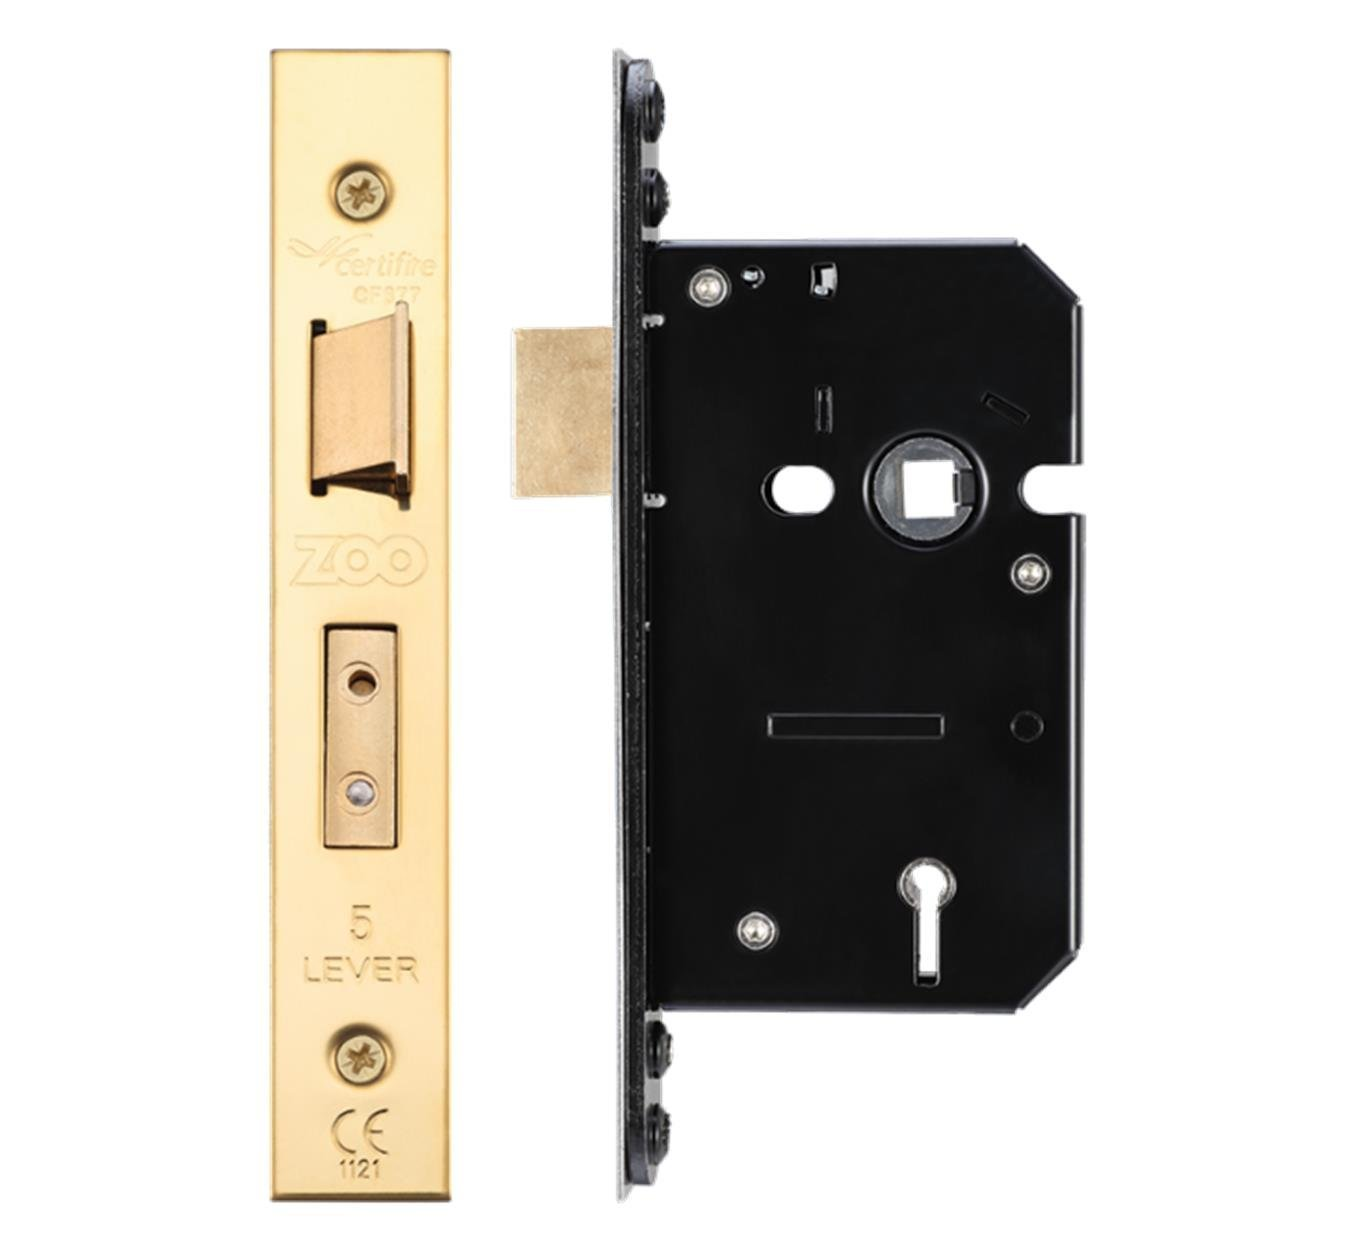 Zoo Hardware 5 Lever Mortice Sash Lock 64mm PVD Brass Forend and Strike From The Door Handle Store UKASNHKTN7875